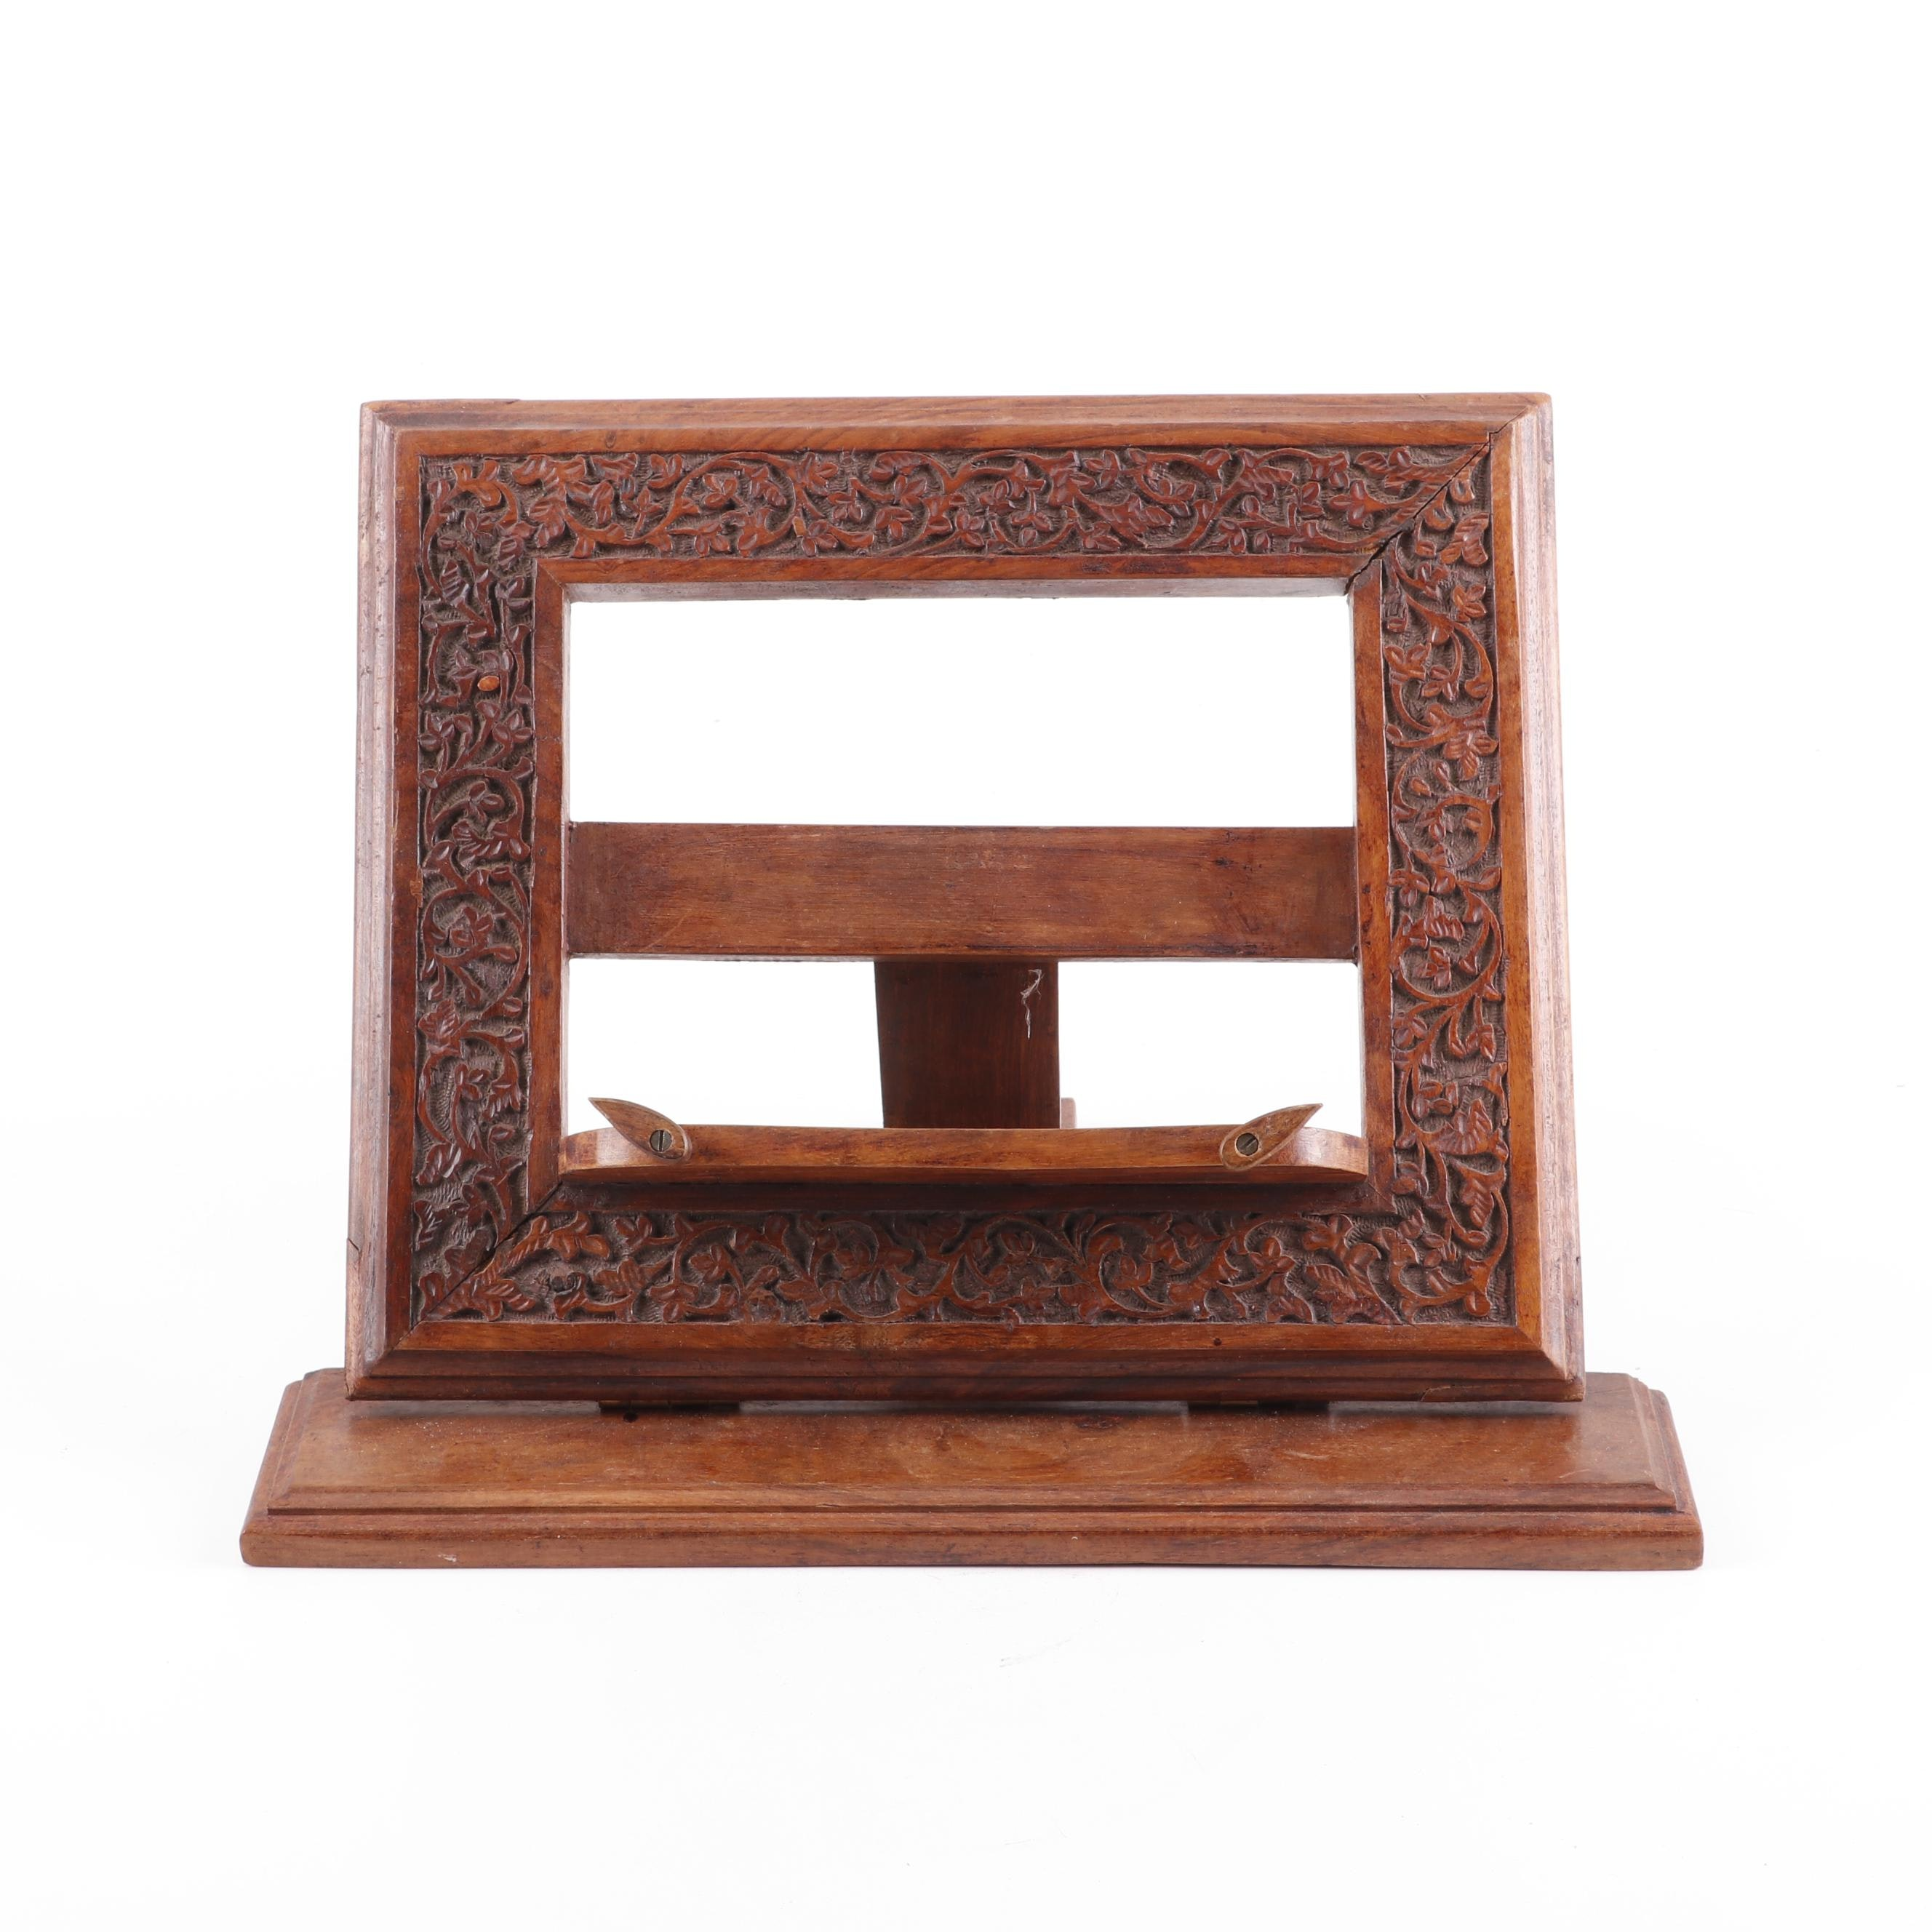 Antique Carved Cherry Wood Adjustable Book Stand